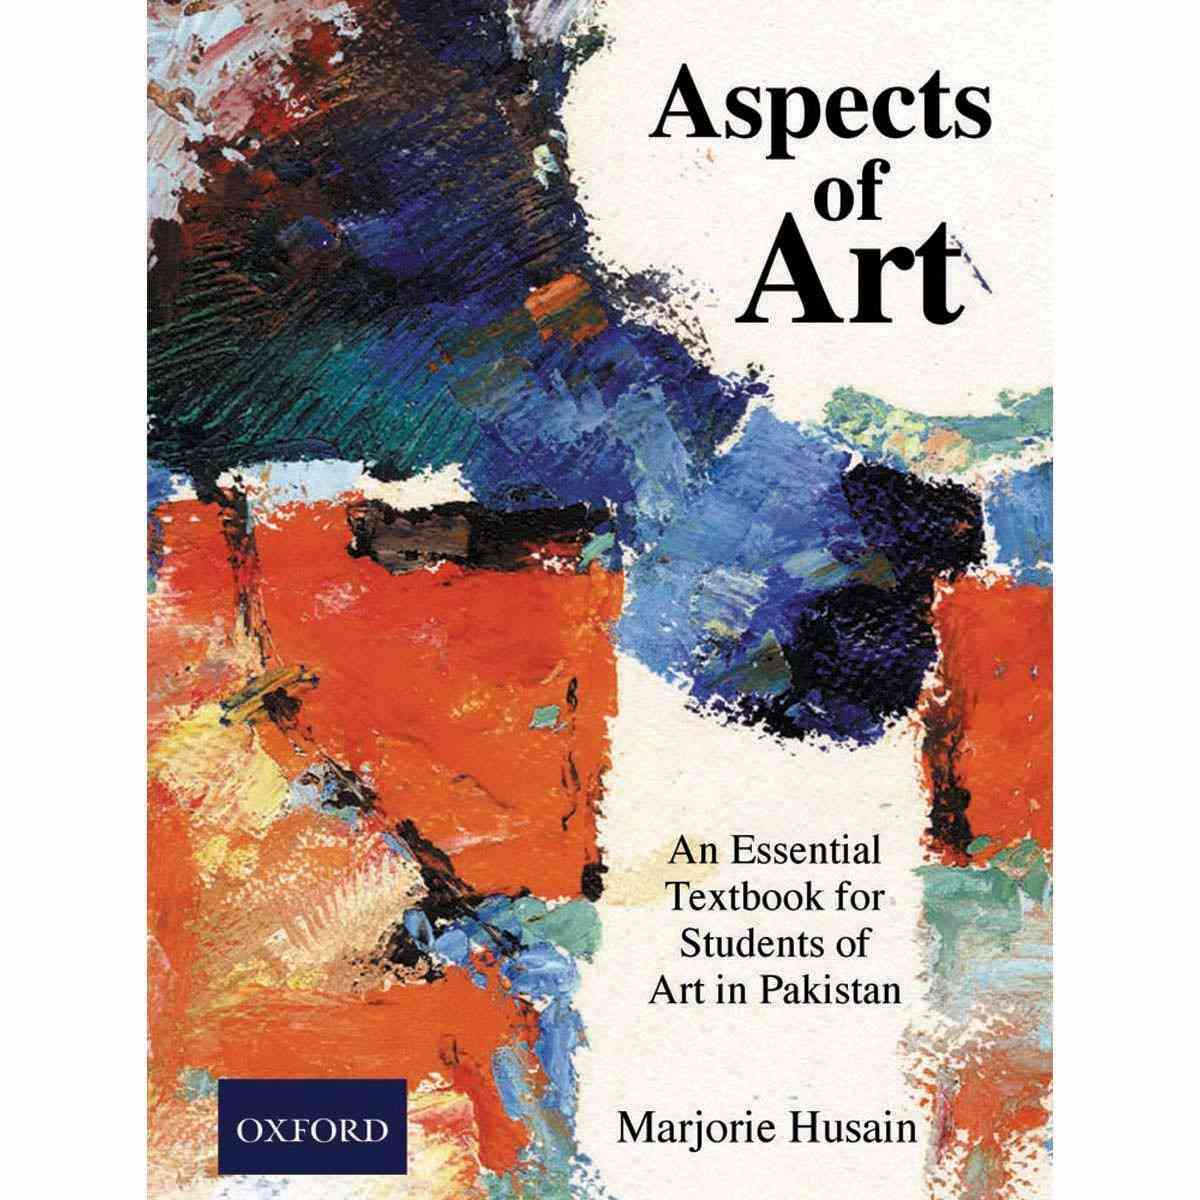 Oxford Books Aspects Of Art: An Essential Textbook For Students Of Art In Pakistan